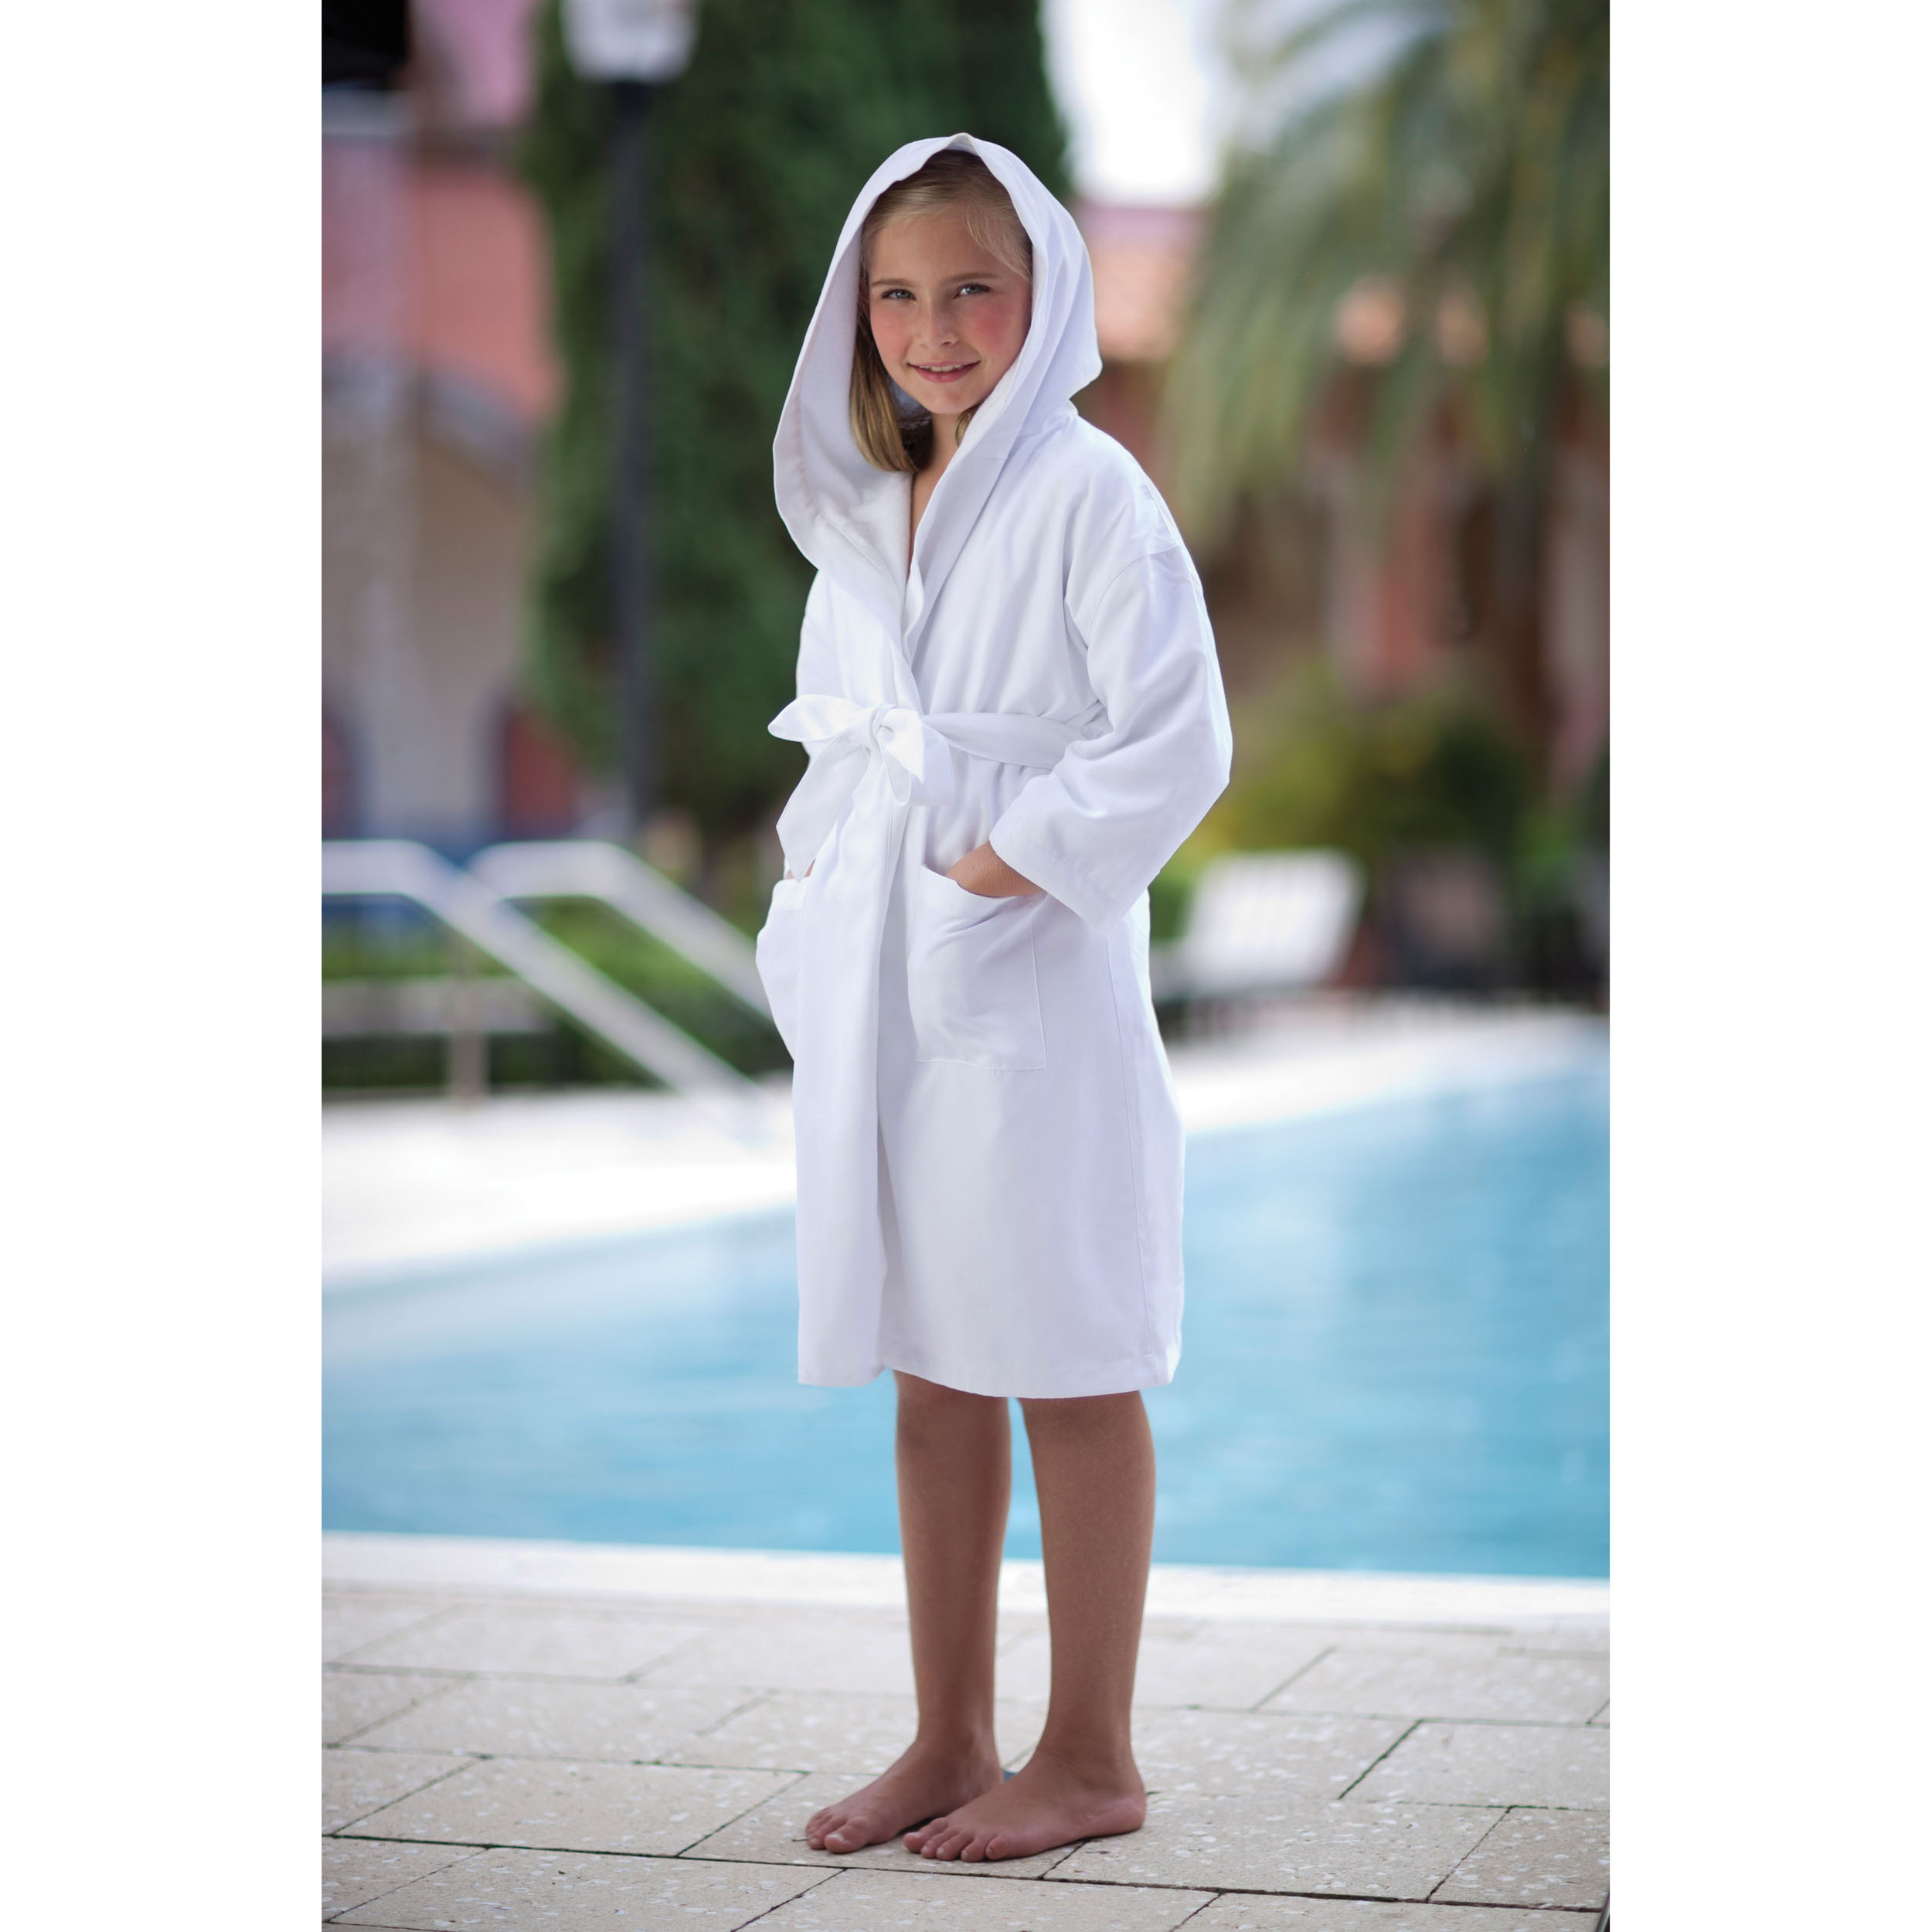 ... Boca Terry Hooded Terry Children s Robes. BocaTerryHoodedTerryRobes.  BocaTerryHoodedTerryRobes f0b4b2921